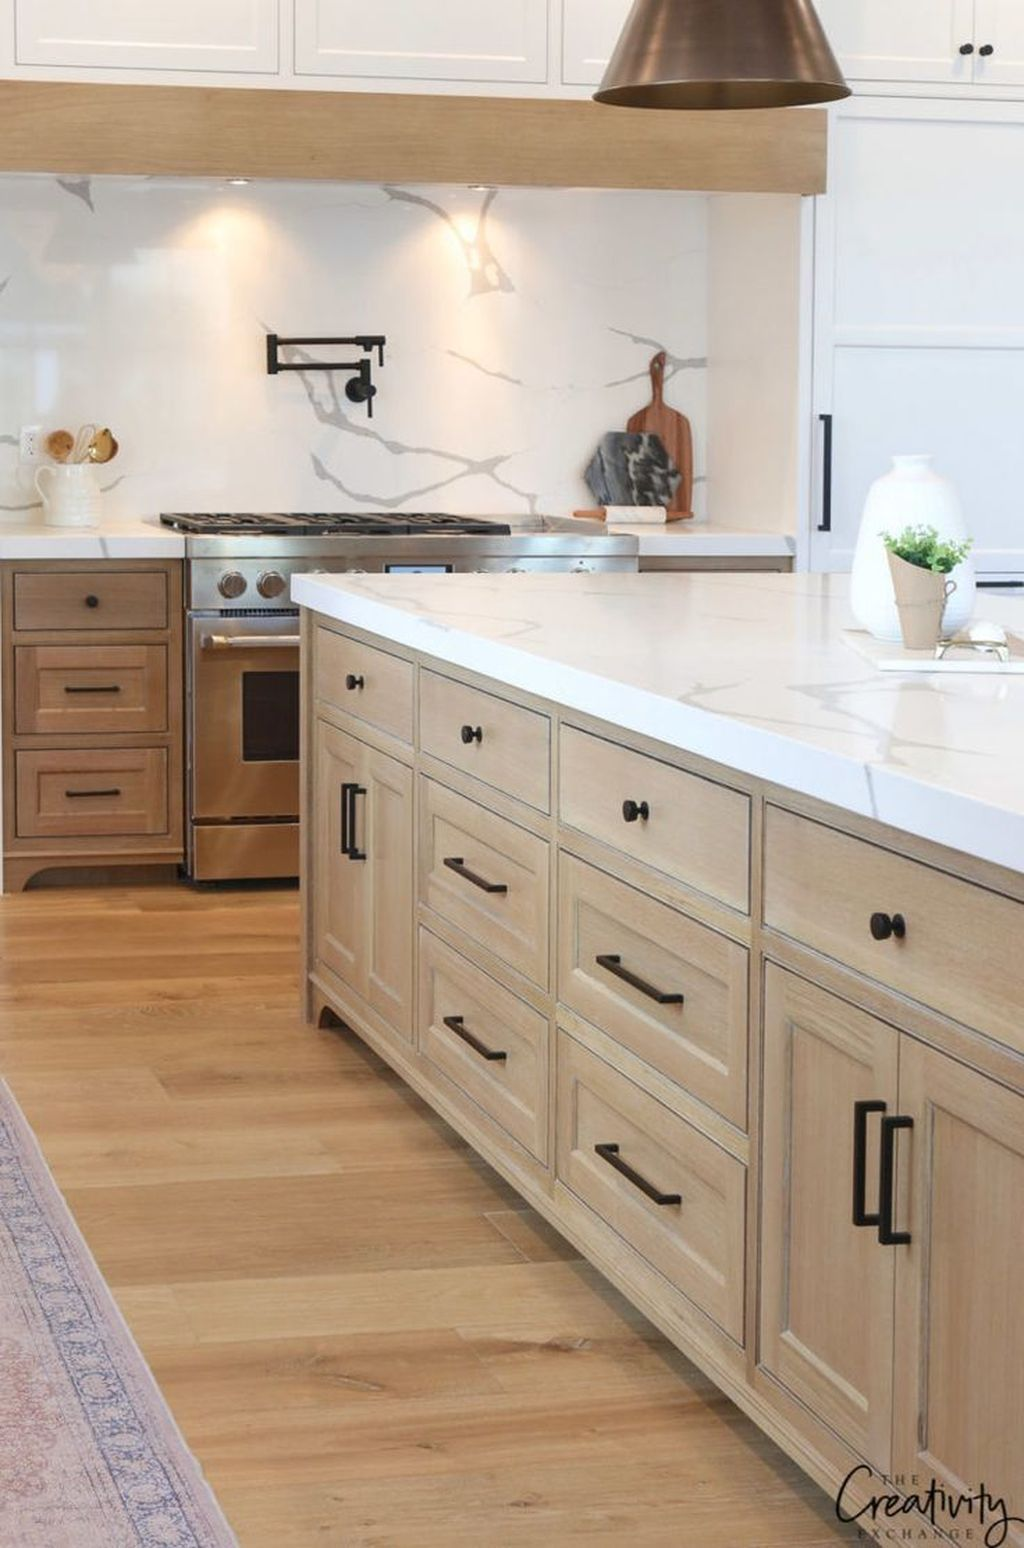 35 Perfect Farmhouse Kitchen Design Ideas To Renew Your Home 35 Perfect In 2020 Natural Wood Kitchen Cabinets Modern Kitchen Cabinets Wood Kitchen Cabinets